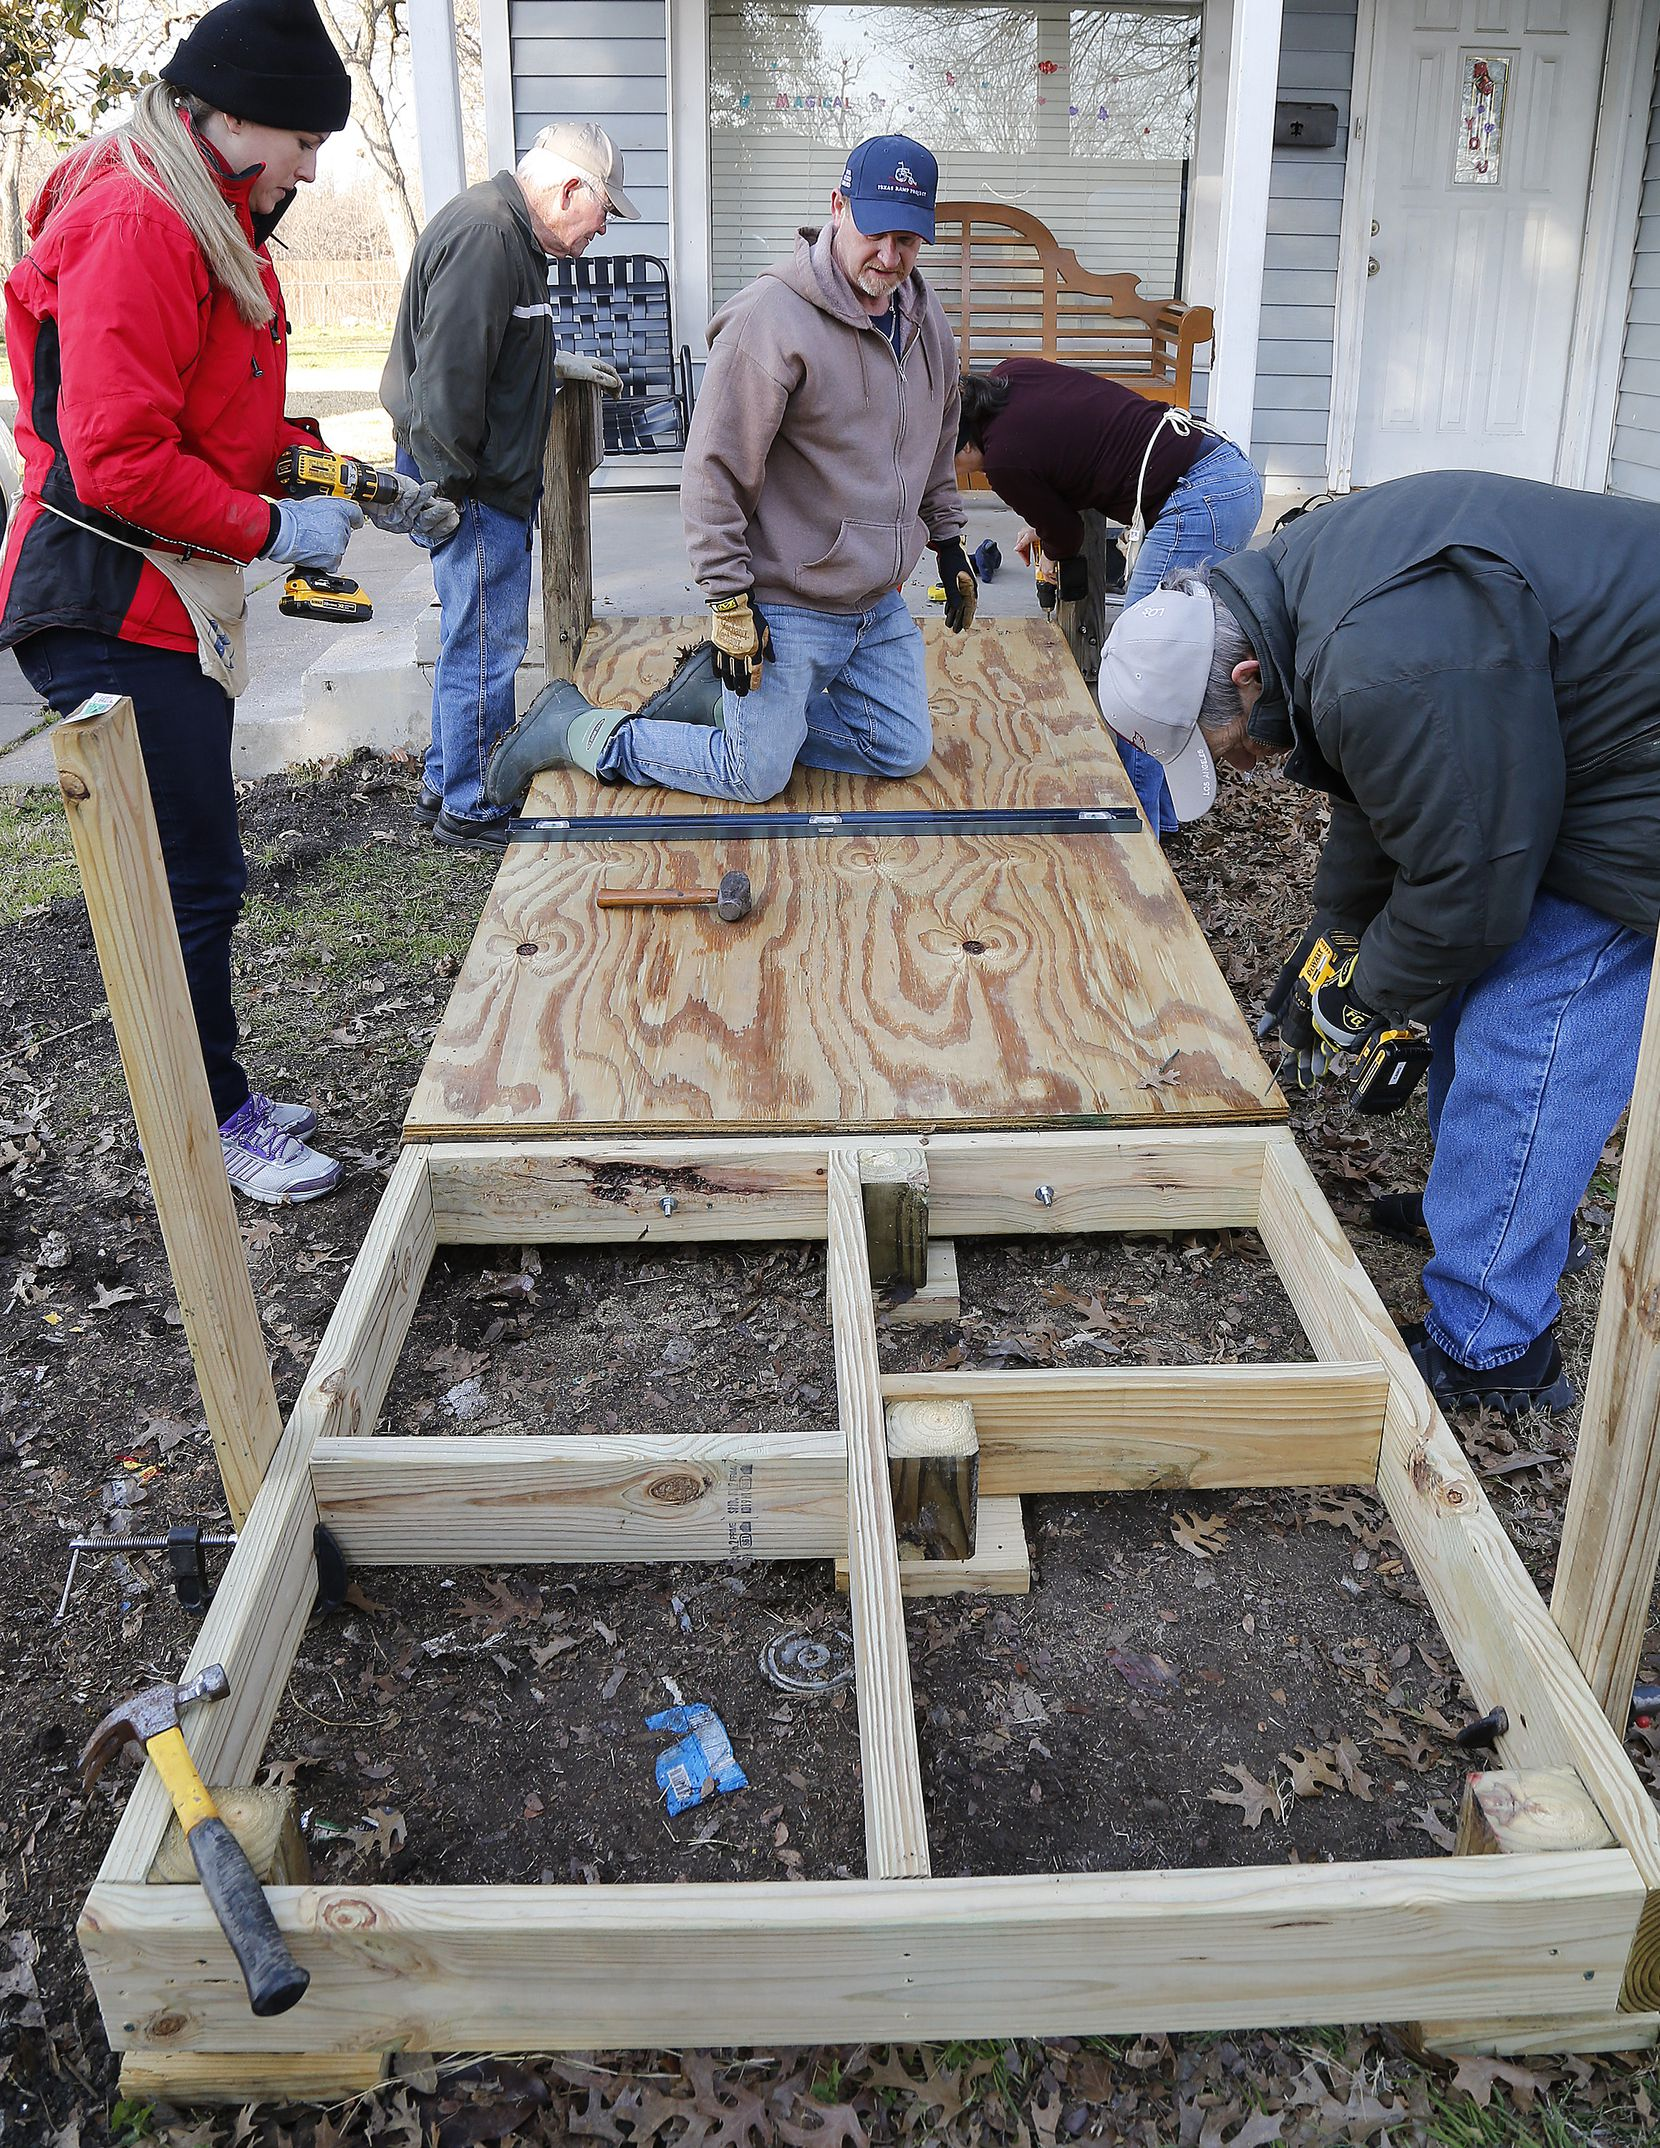 Project manager Kirk Saxon (center) of Melissa, Texas surveys the situation from his knees as The Kiwanis Club of McKinney builds a wheelchair ramp at the home of Rachel Armijo, in McKinney on Saturday morning, January 26, 2019.